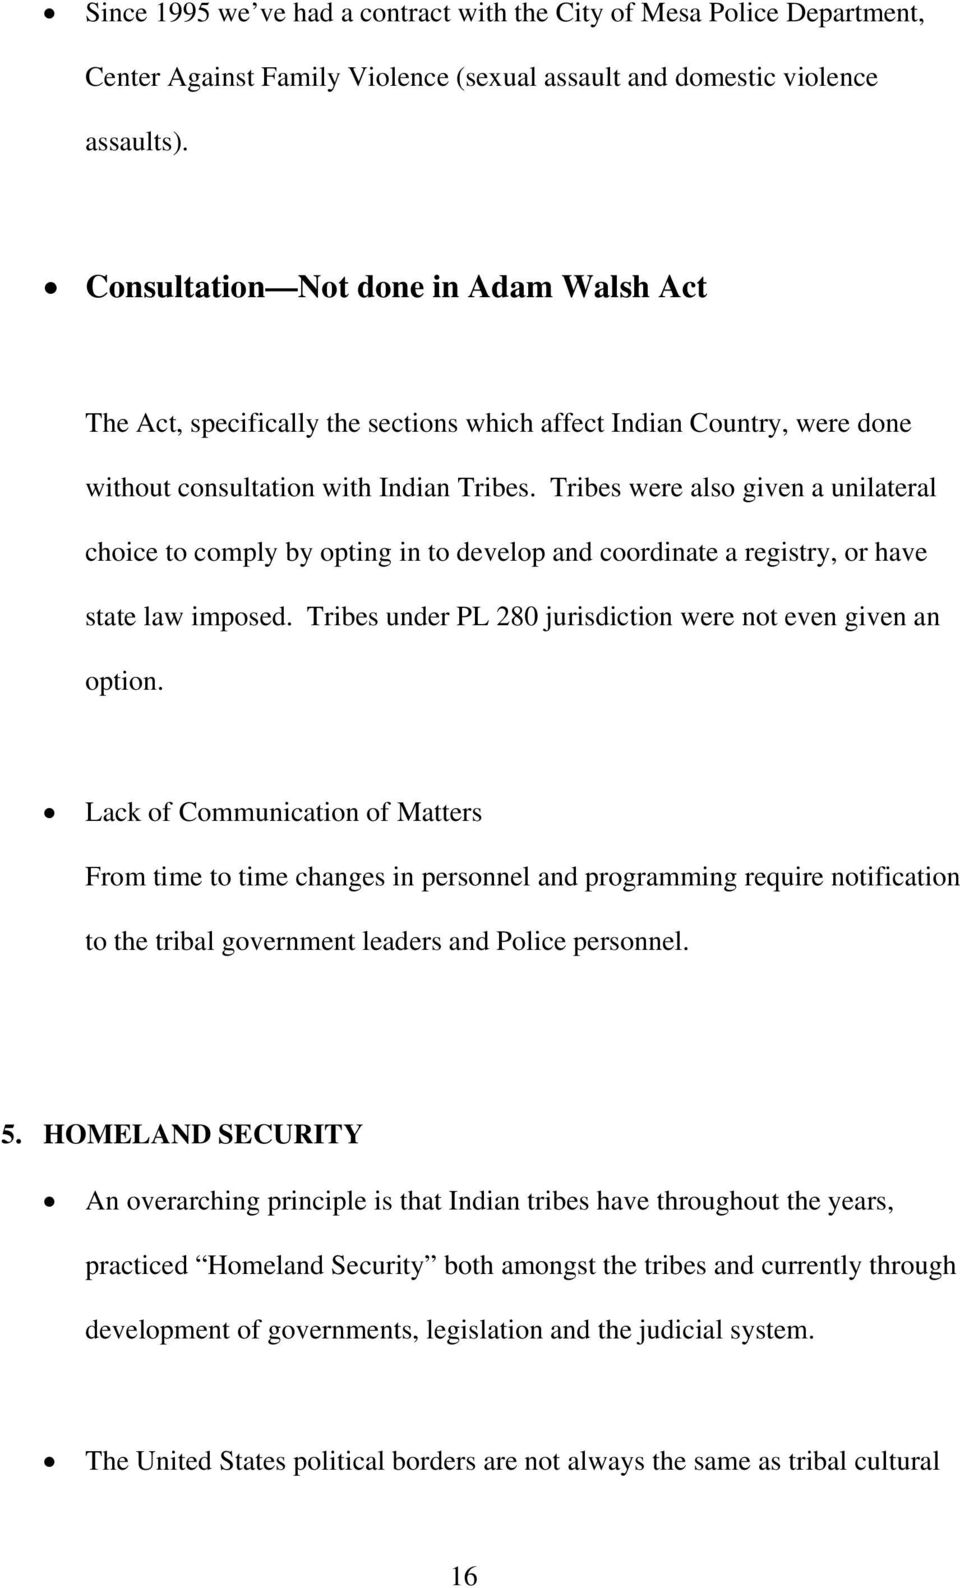 Tribes were also given a unilateral choice to comply by opting in to develop and coordinate a registry, or have state law imposed. Tribes under PL 280 jurisdiction were not even given an option.